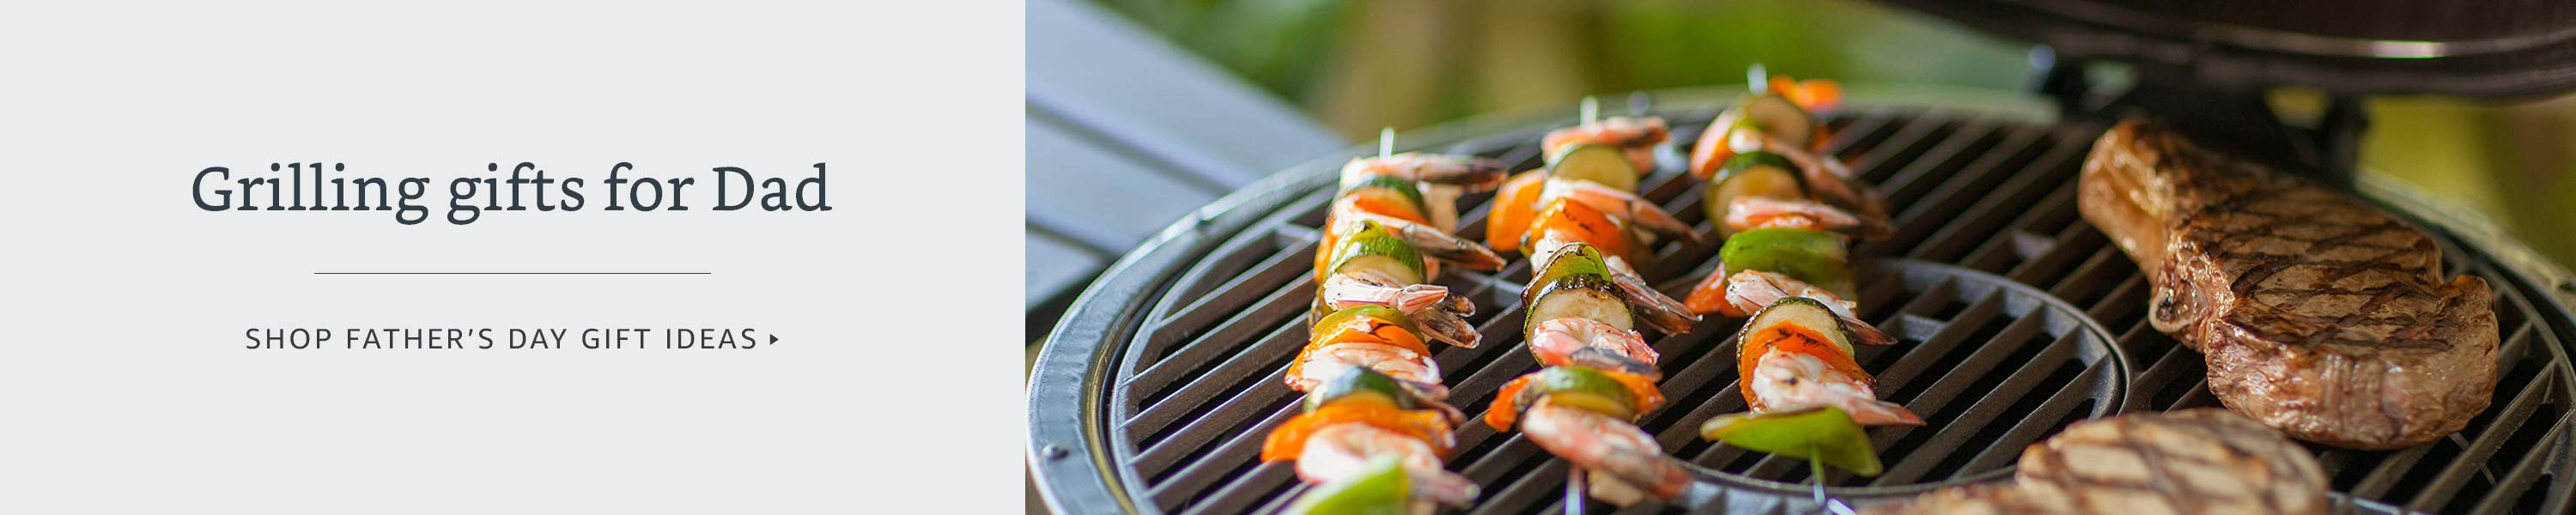 Grilling gifts for Dad. Shop Father's Day Gift Ideas.